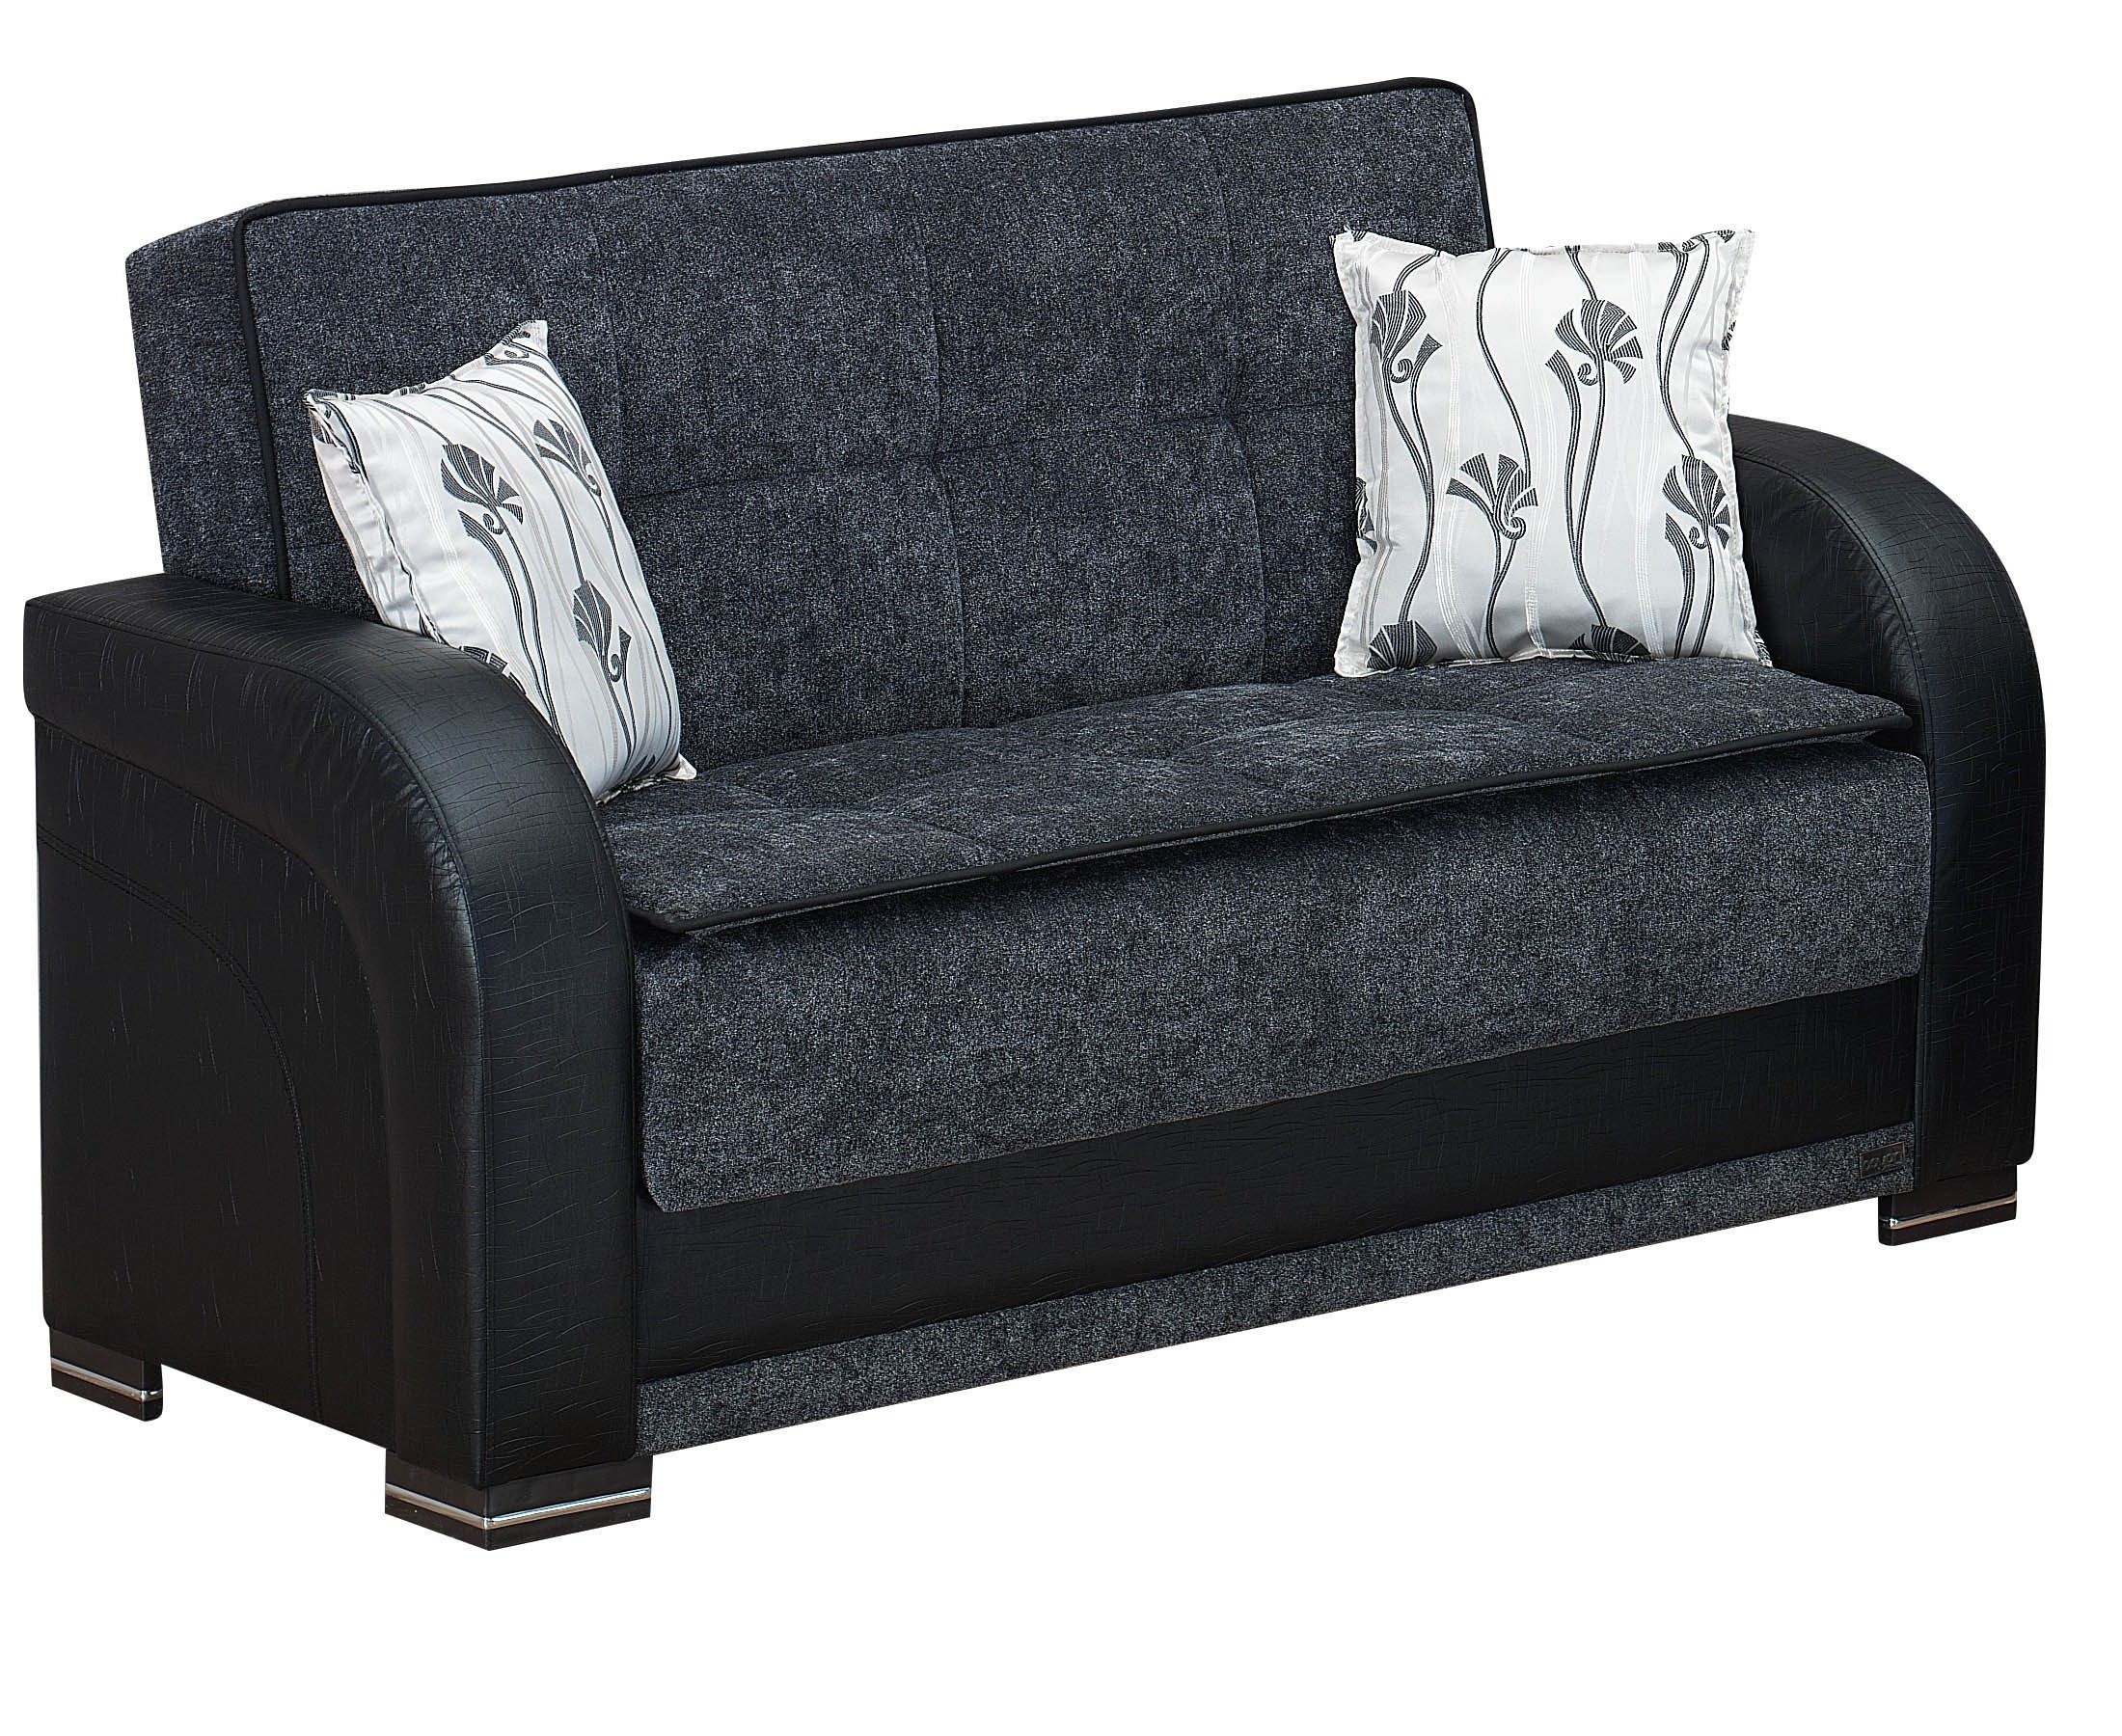 Oklahoma Loveseat By Empire Furniture Usa